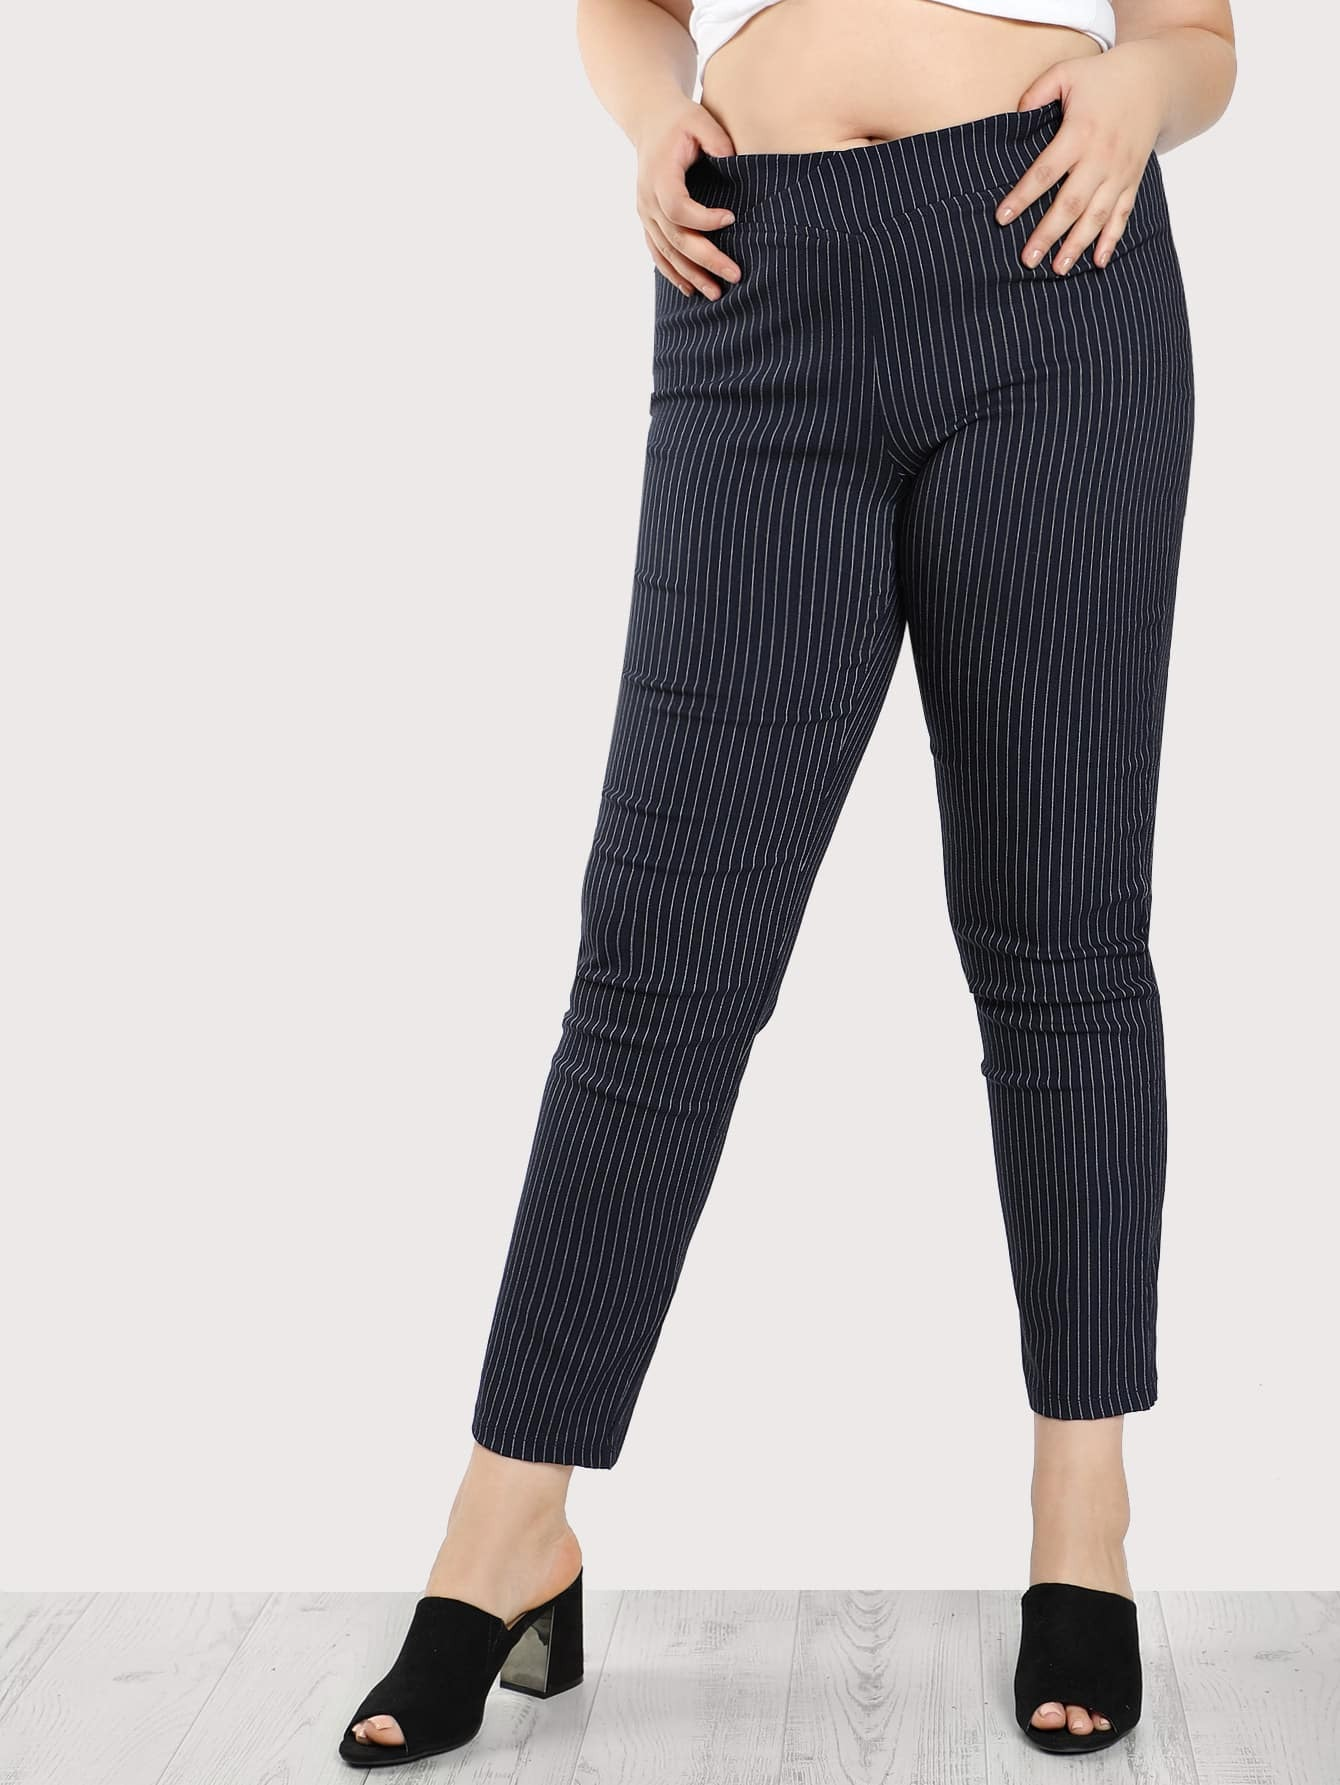 Image of Elasticized Waist Pinstripe Pants